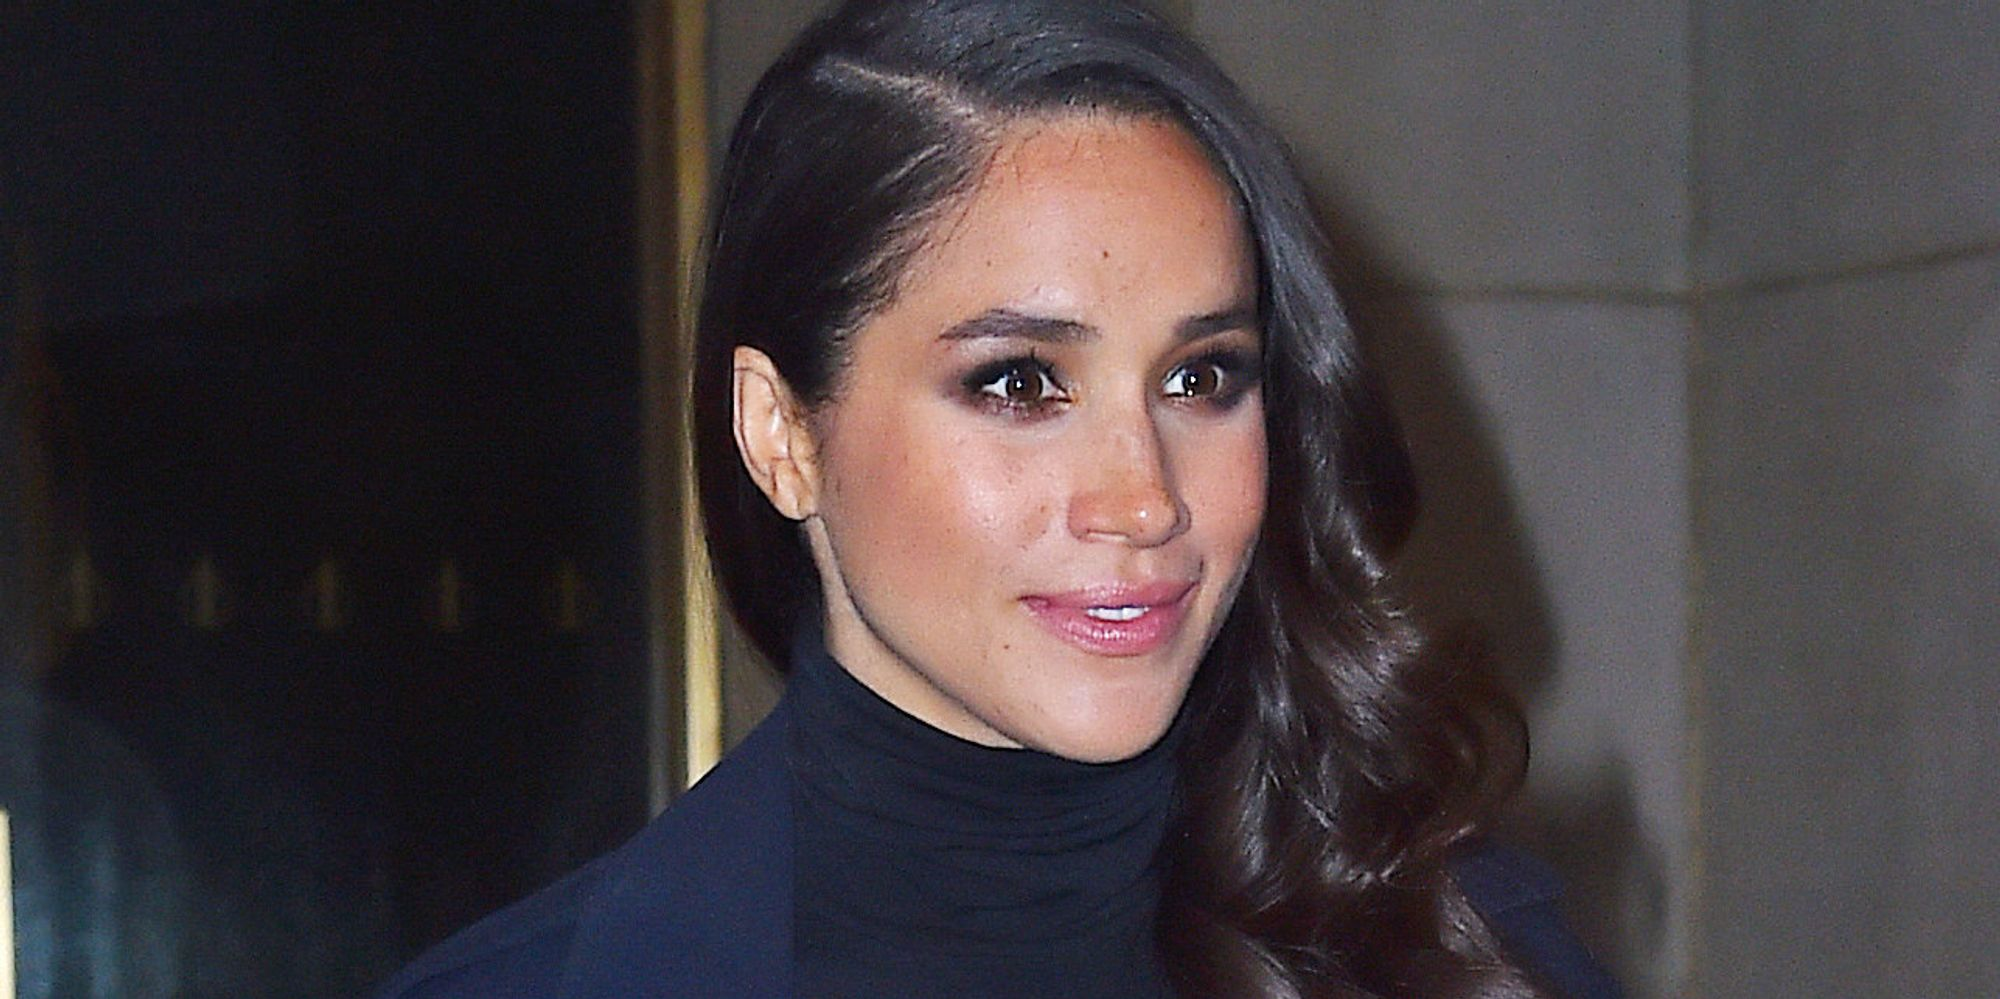 markle girls But before this royal wedding, girls like me — and markle's mother, and the women in the kingdom choir — had never been included in fairy tale visions of royalty.